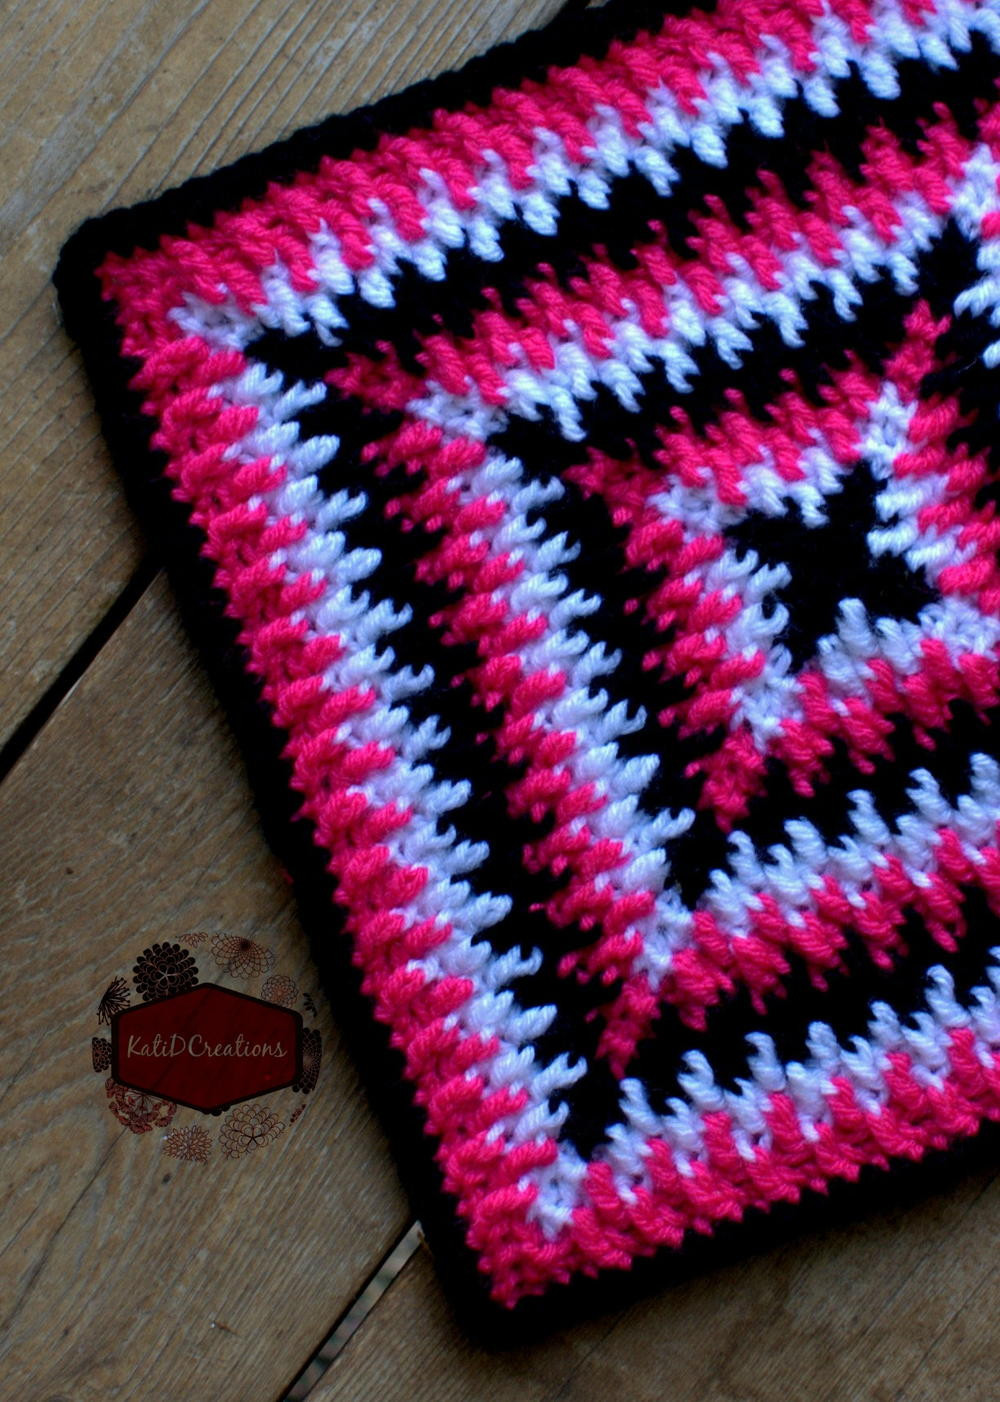 Crochet Squares Inspirational Mosaic Ripples Granny Square Of Charming 43 Ideas Crochet Squares